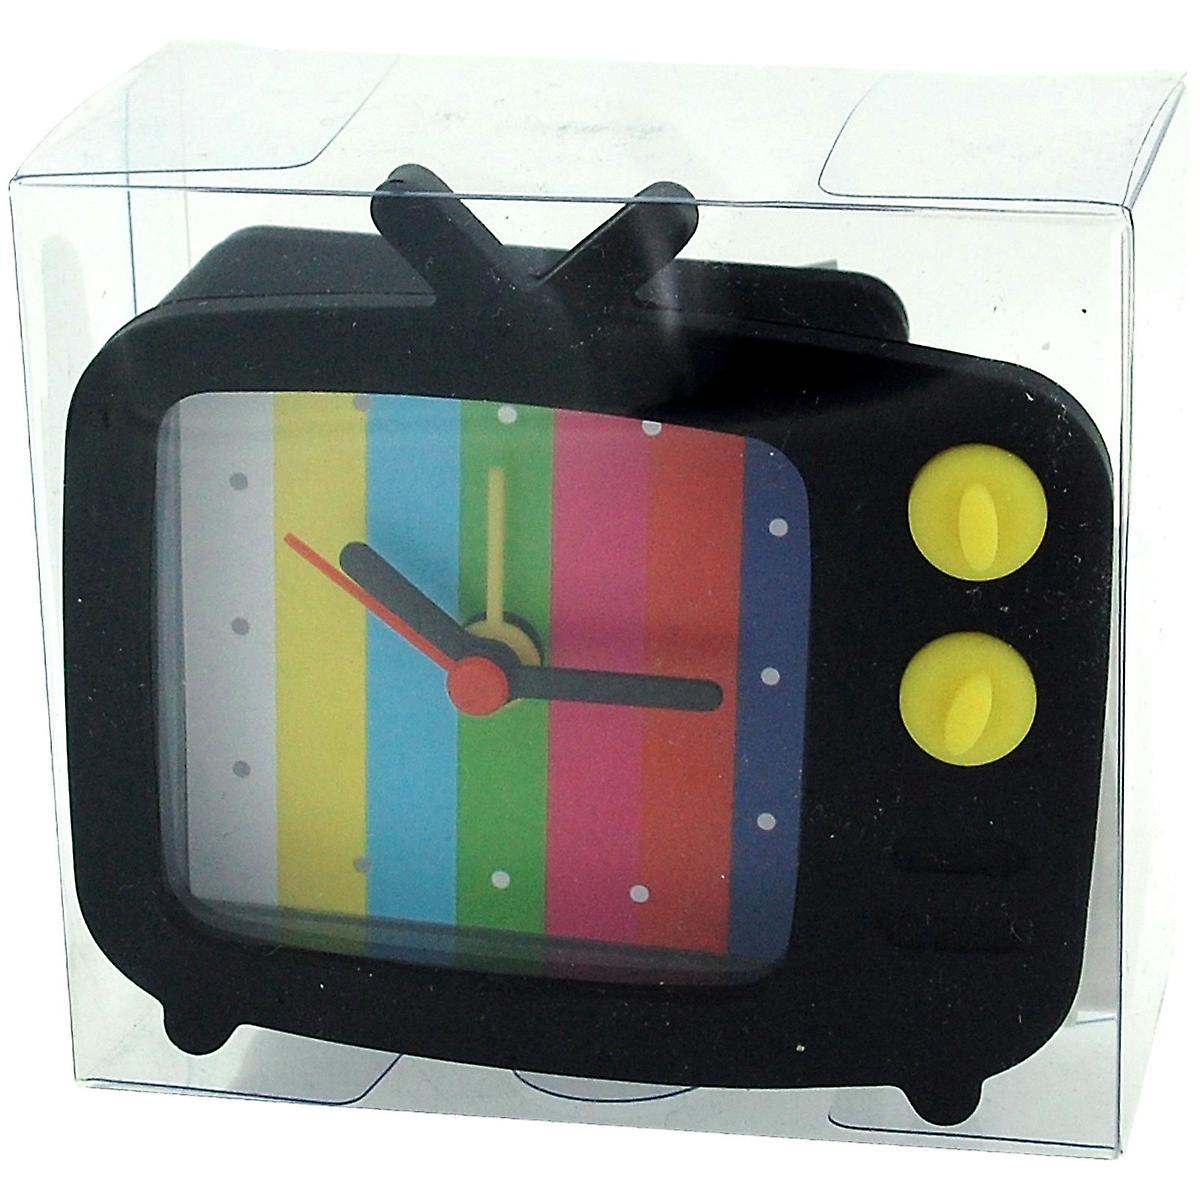 The Olivia Collection Black Novelty Silicone Alarm Clock Tv Style Test Picture Fruugo Ie